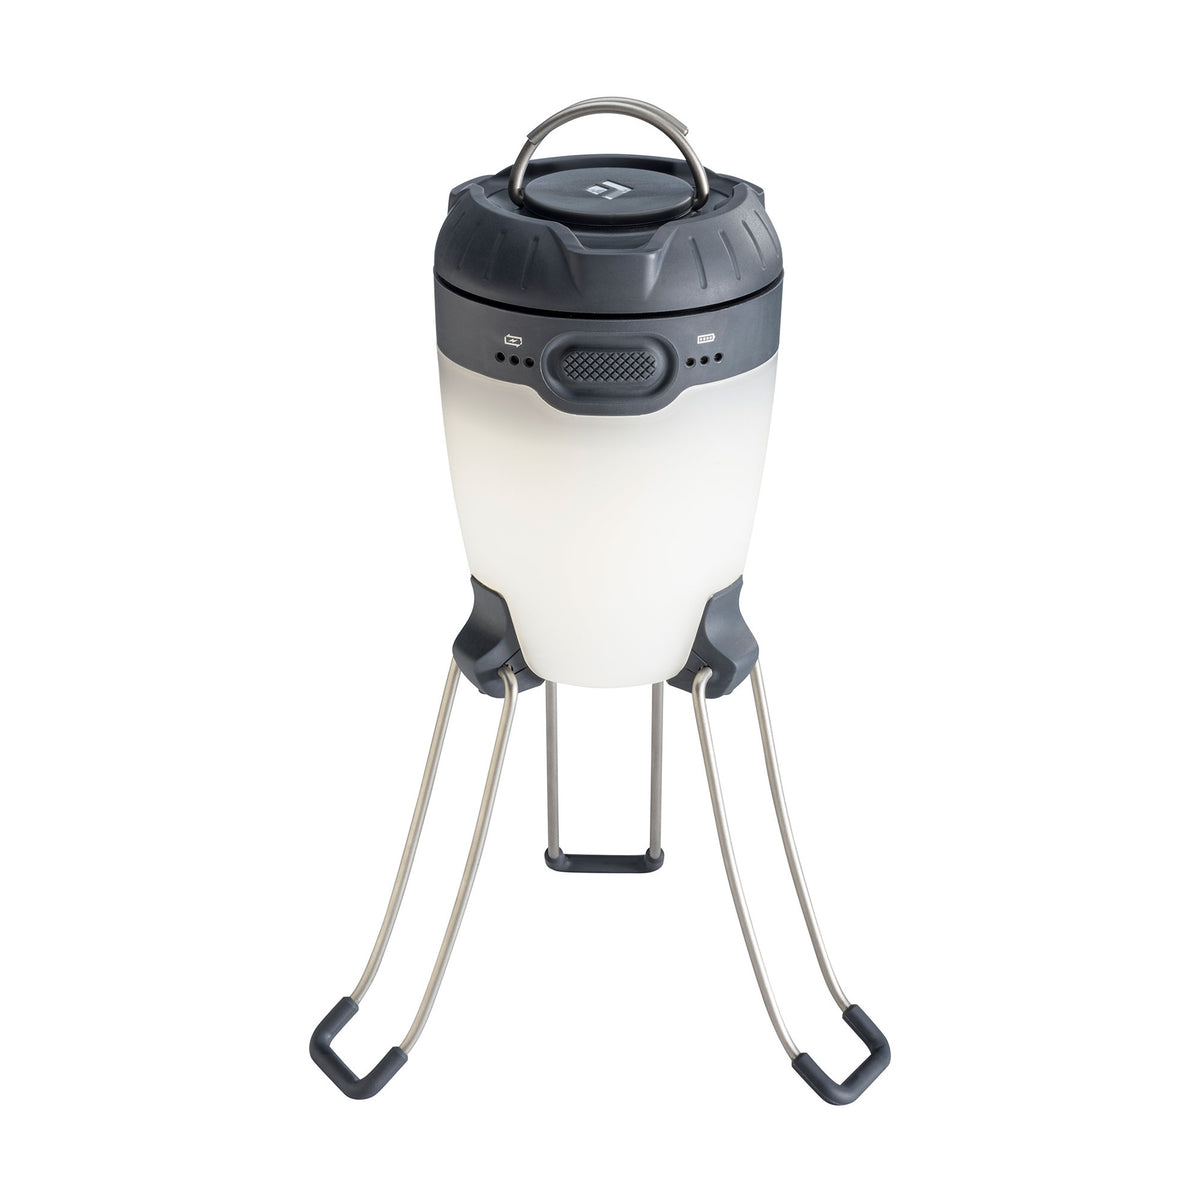 Black Diamond Apollo camping lantern, shown stood up on legs in black/white colours